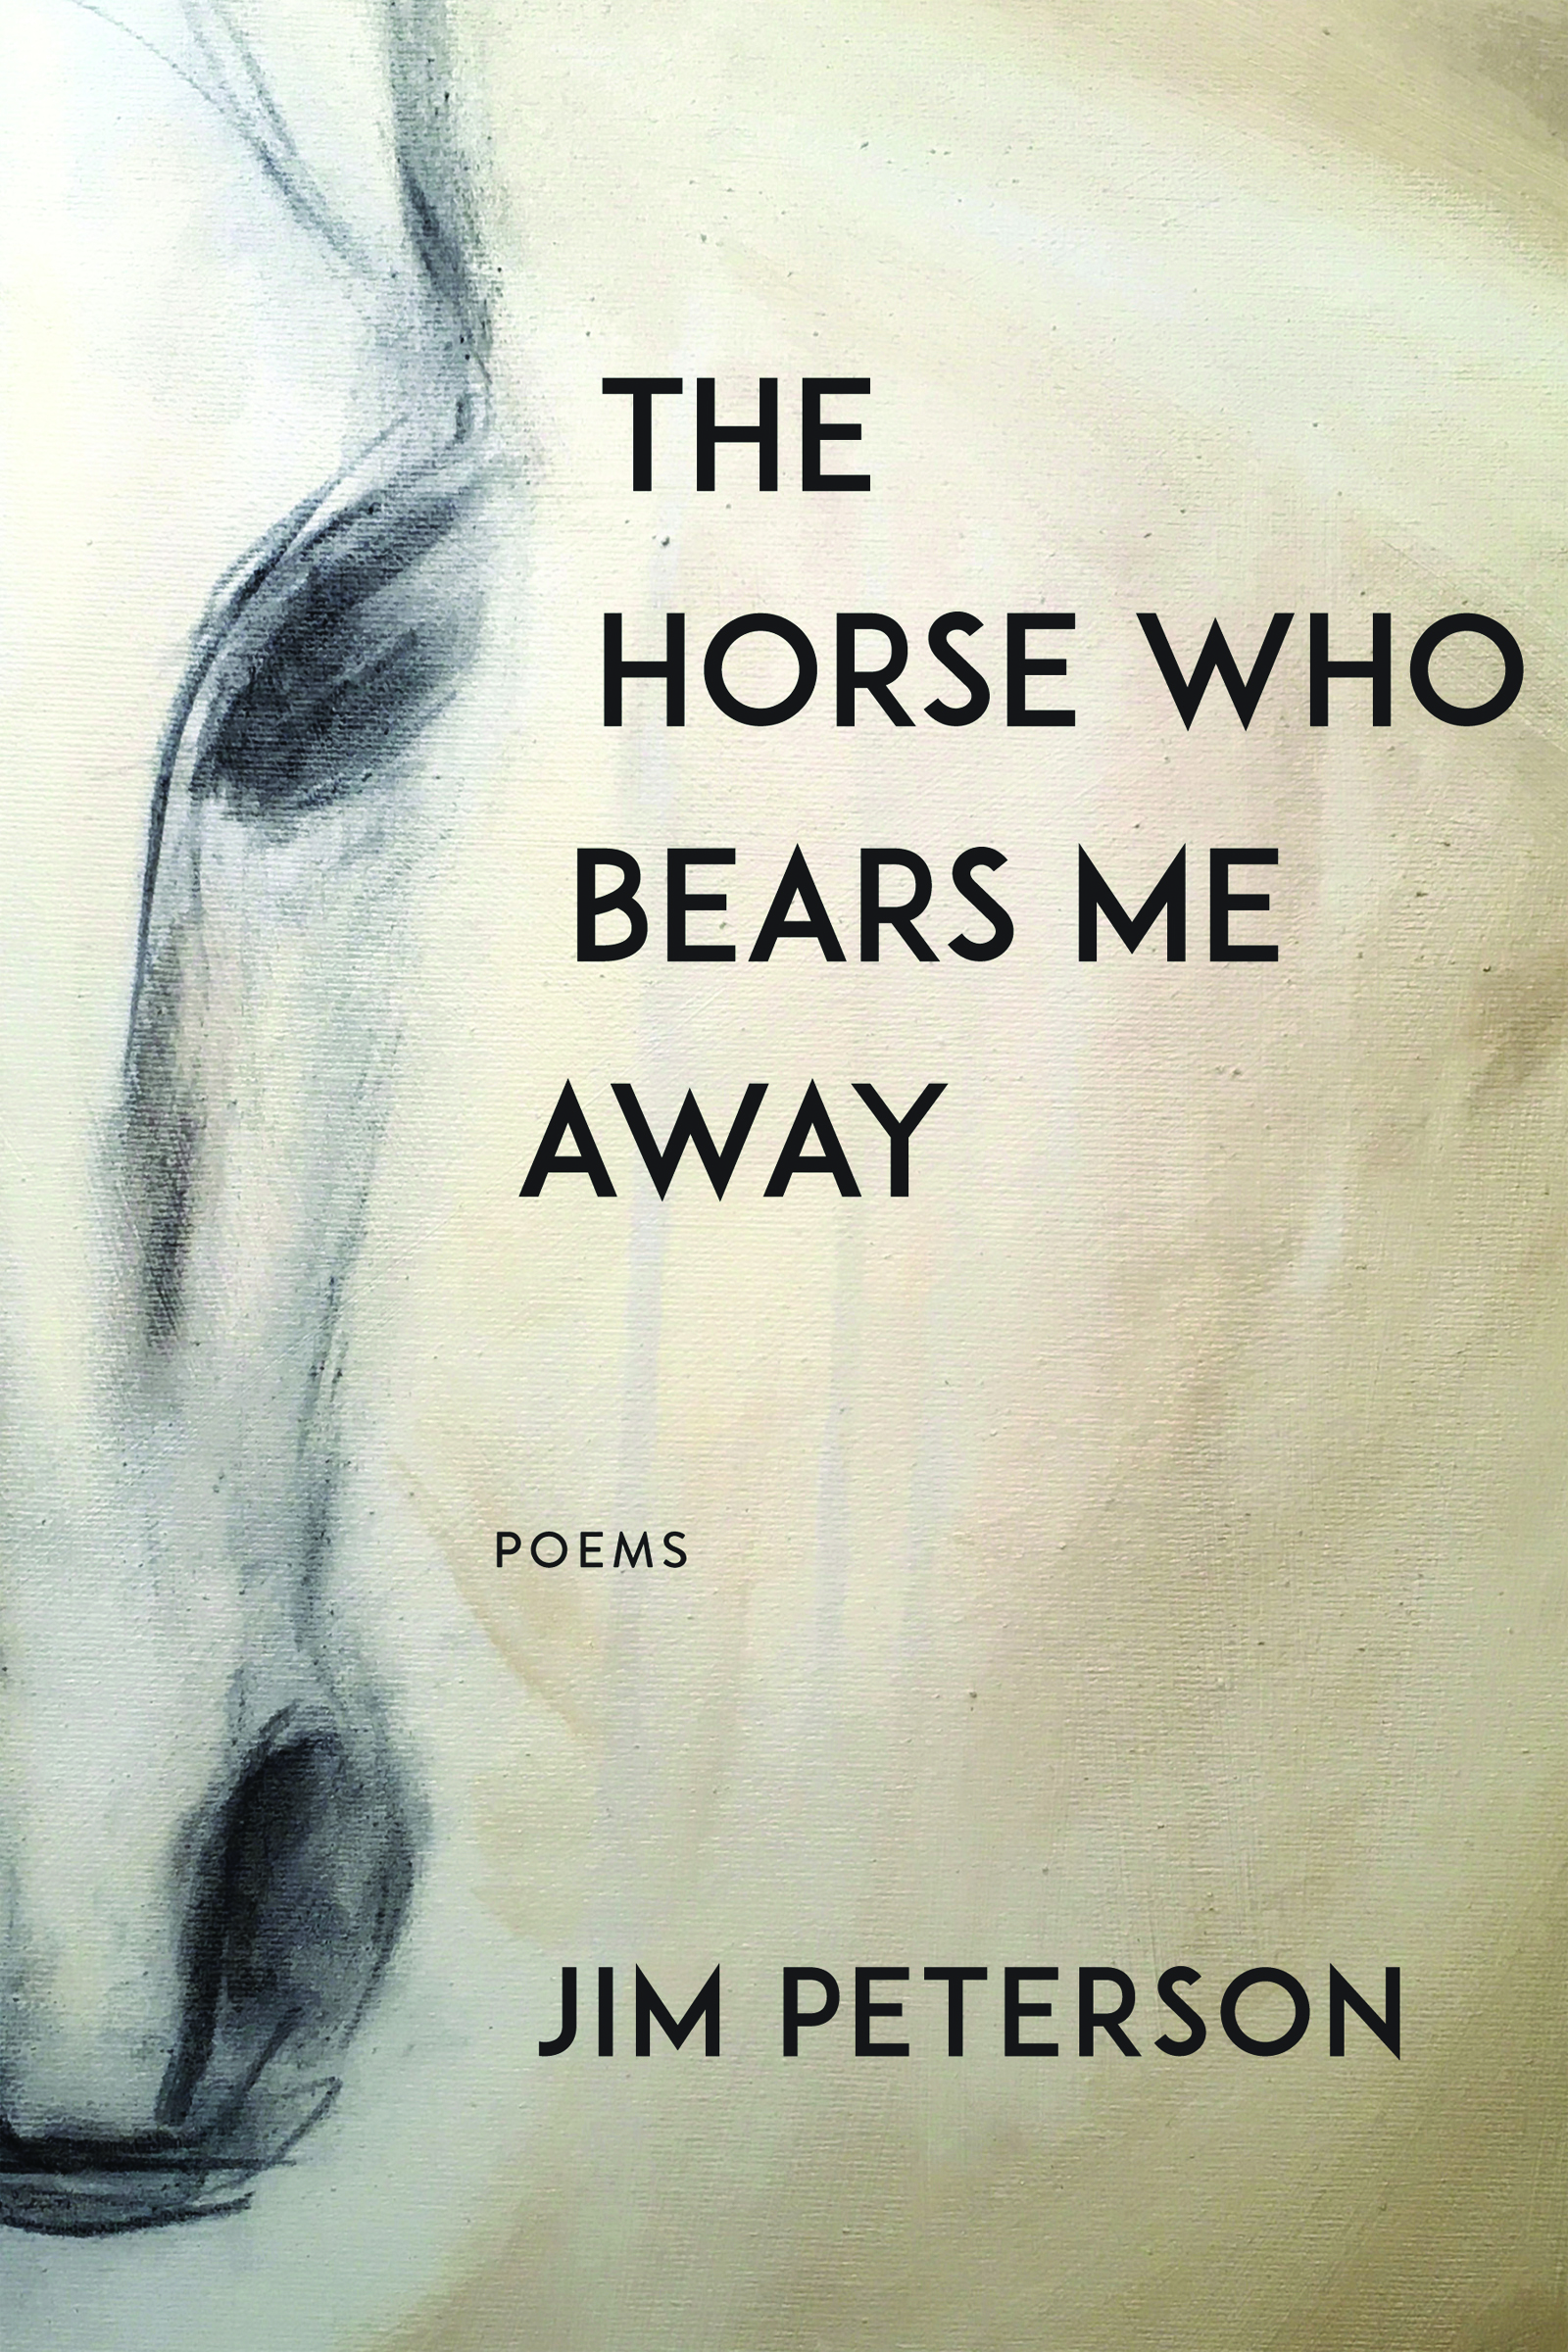 A charcoal sketch of the face of a horse with black text that reads The Horse Who Bears Me Away poems by Jim Peterson.